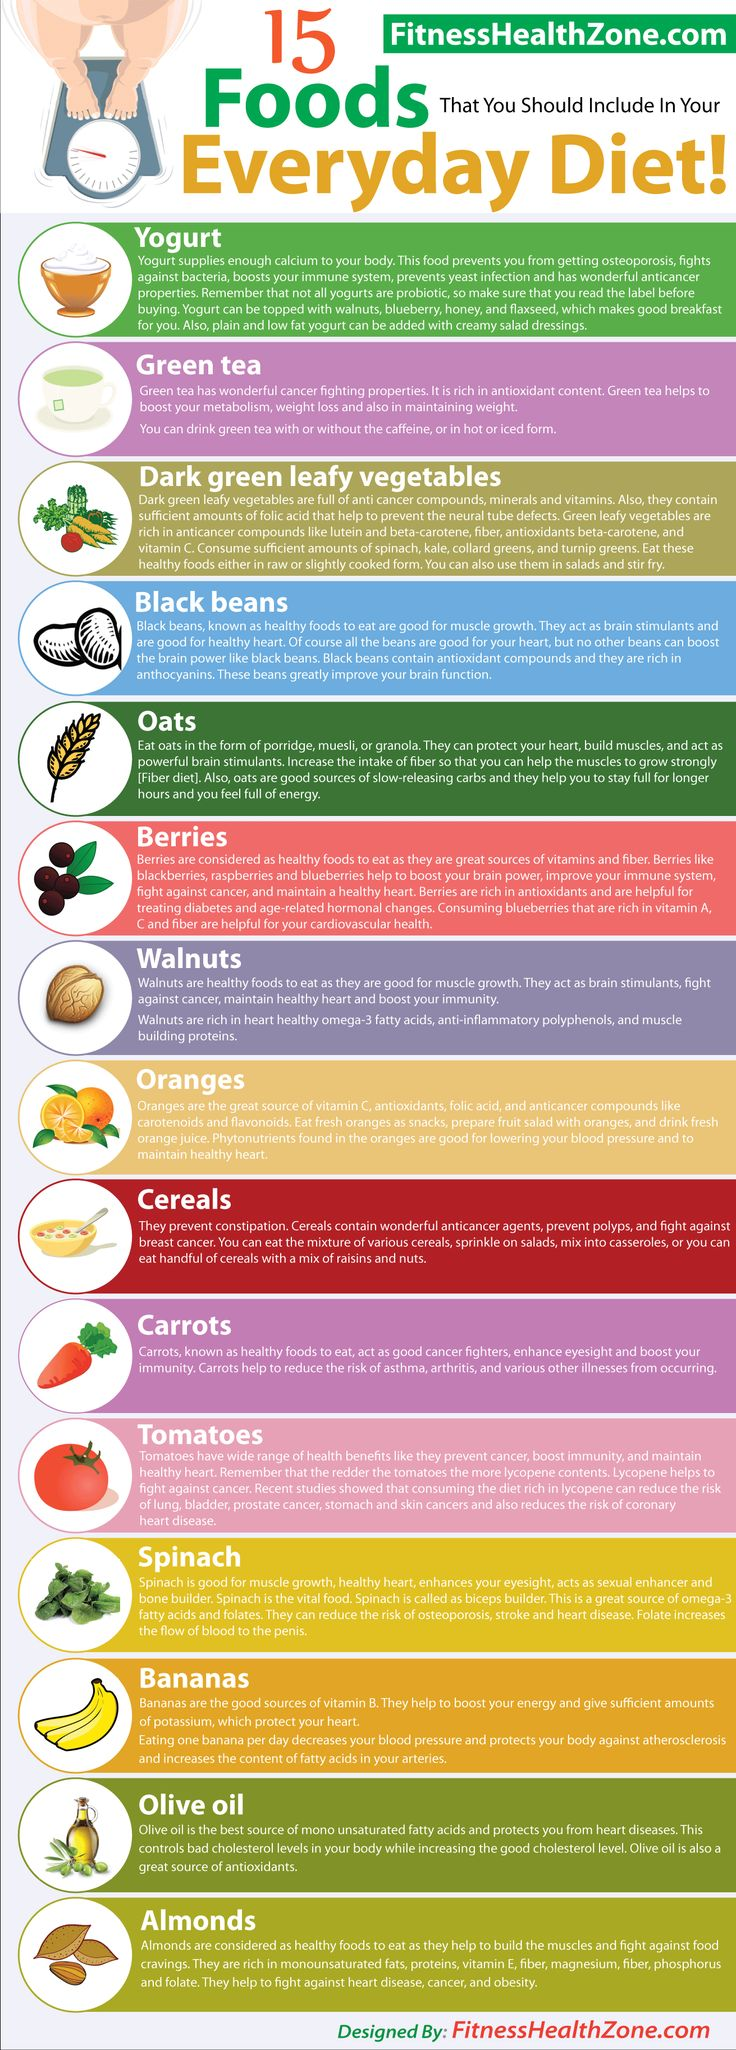 15 Foods That You Should Include In Your Everyday Diet! | See more about fitness diet, foods and diets.